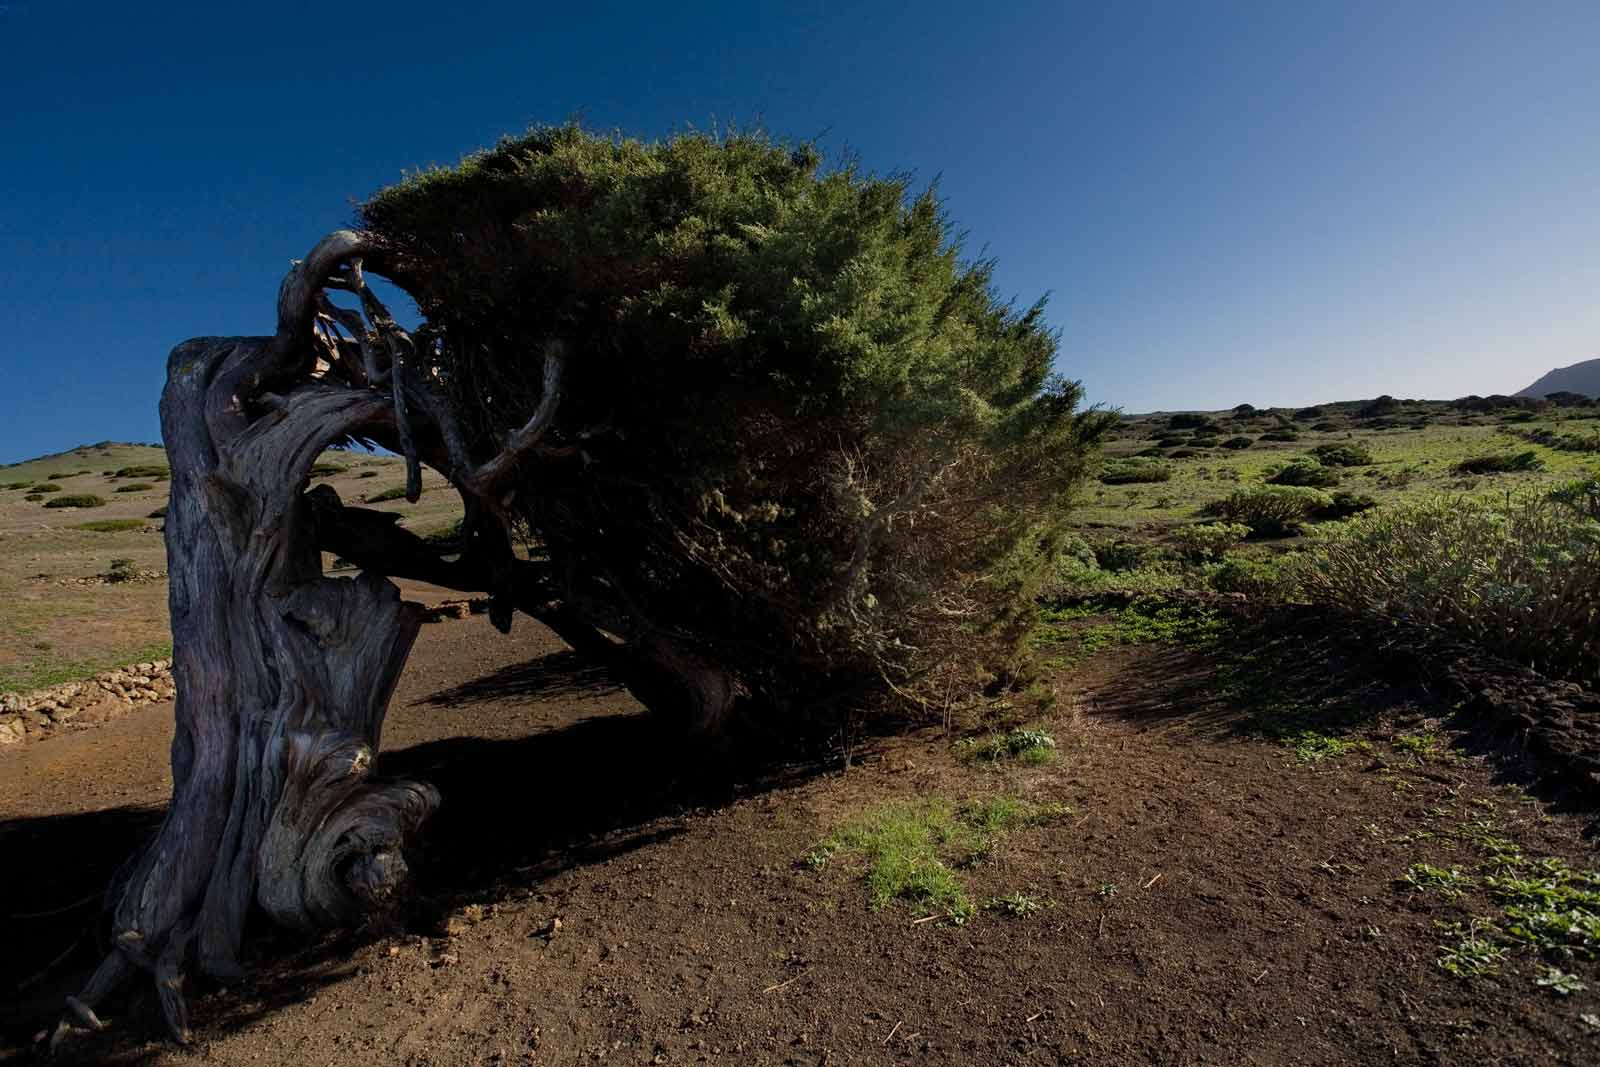 juniper tree, El Hierro